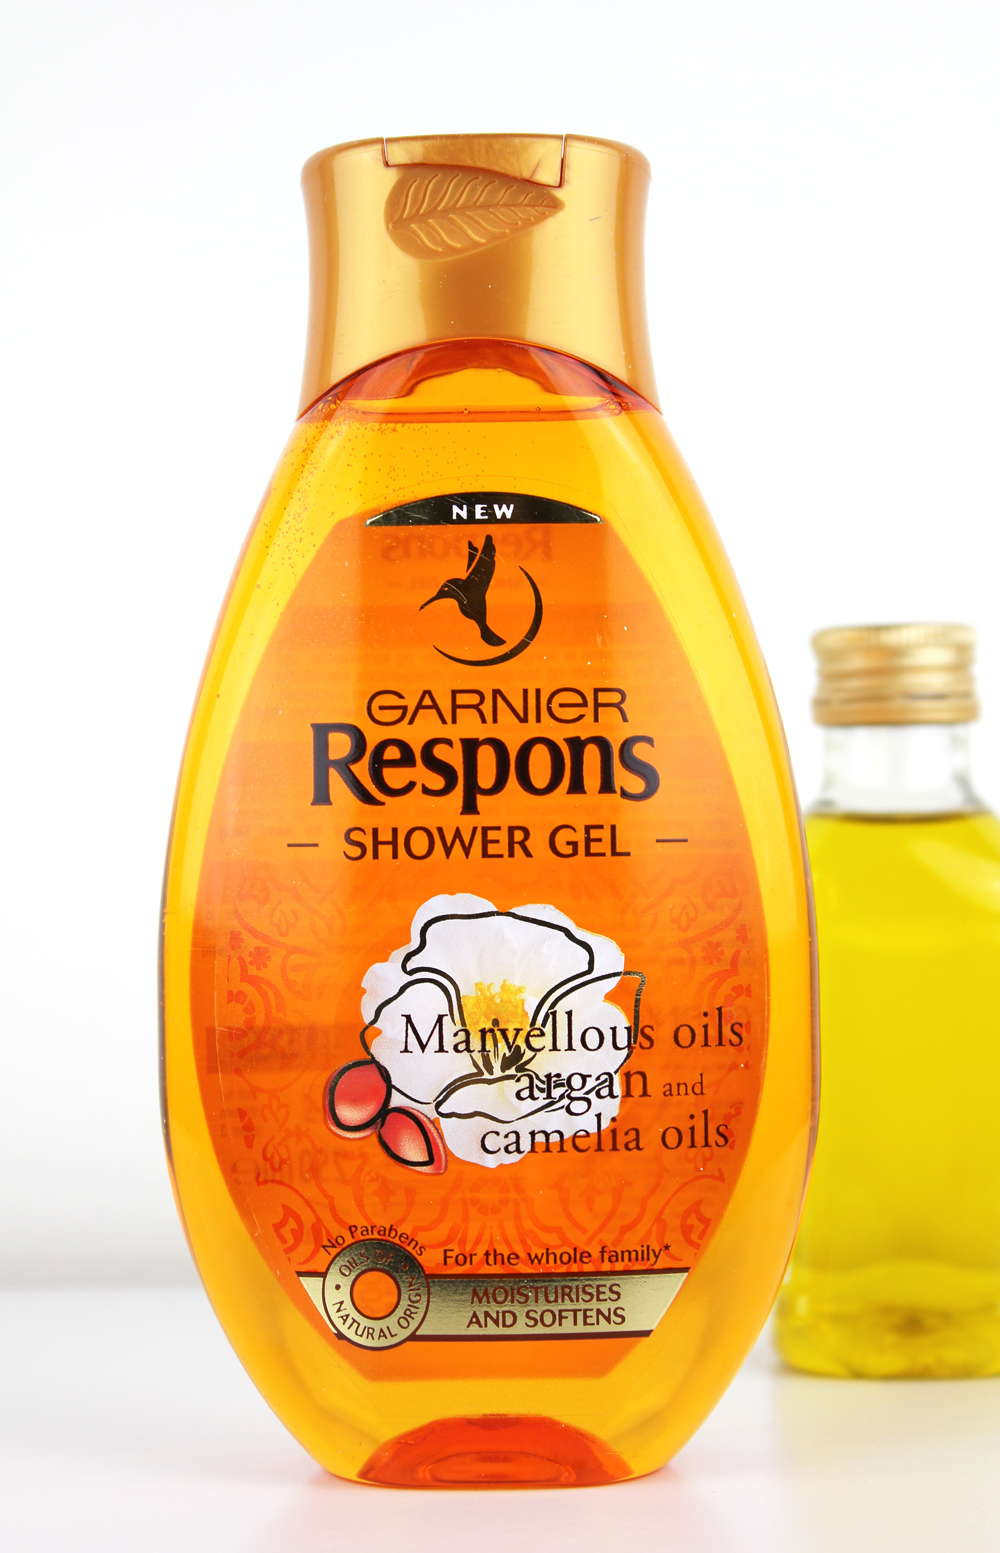 Garnier Respons Shower Gel Marvellous Oils